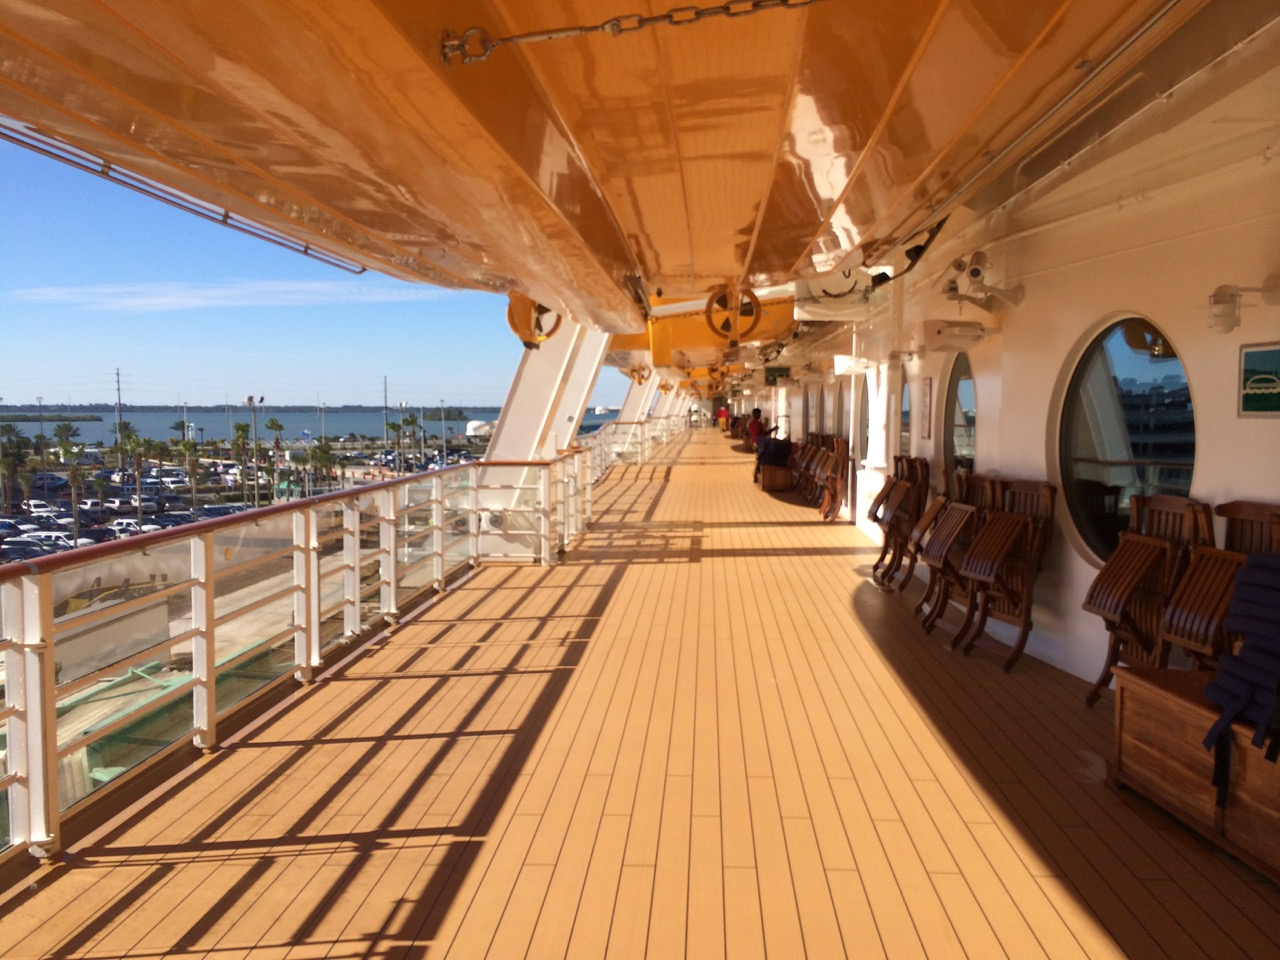 Decks scrubbed and clean for visiting guests on the Disney Cruise Line. Photo by J. Jeff Kober.